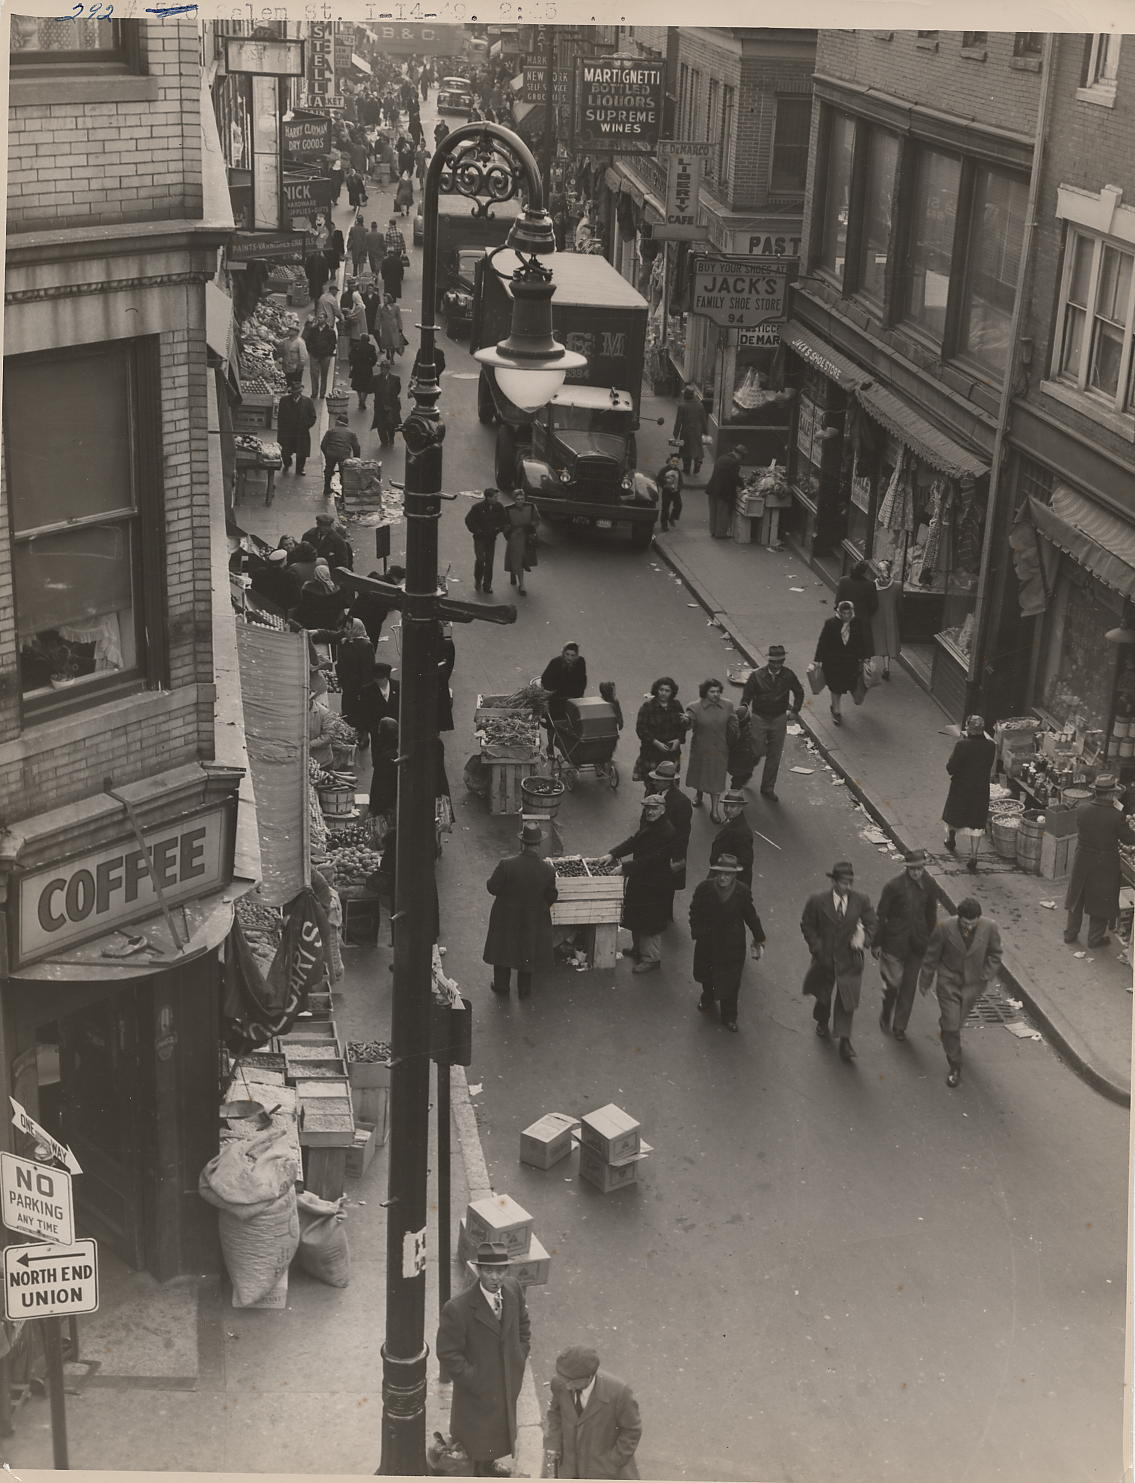 Salem Street, historic district of North End, Boston, 1949 (City of Boston Archives)